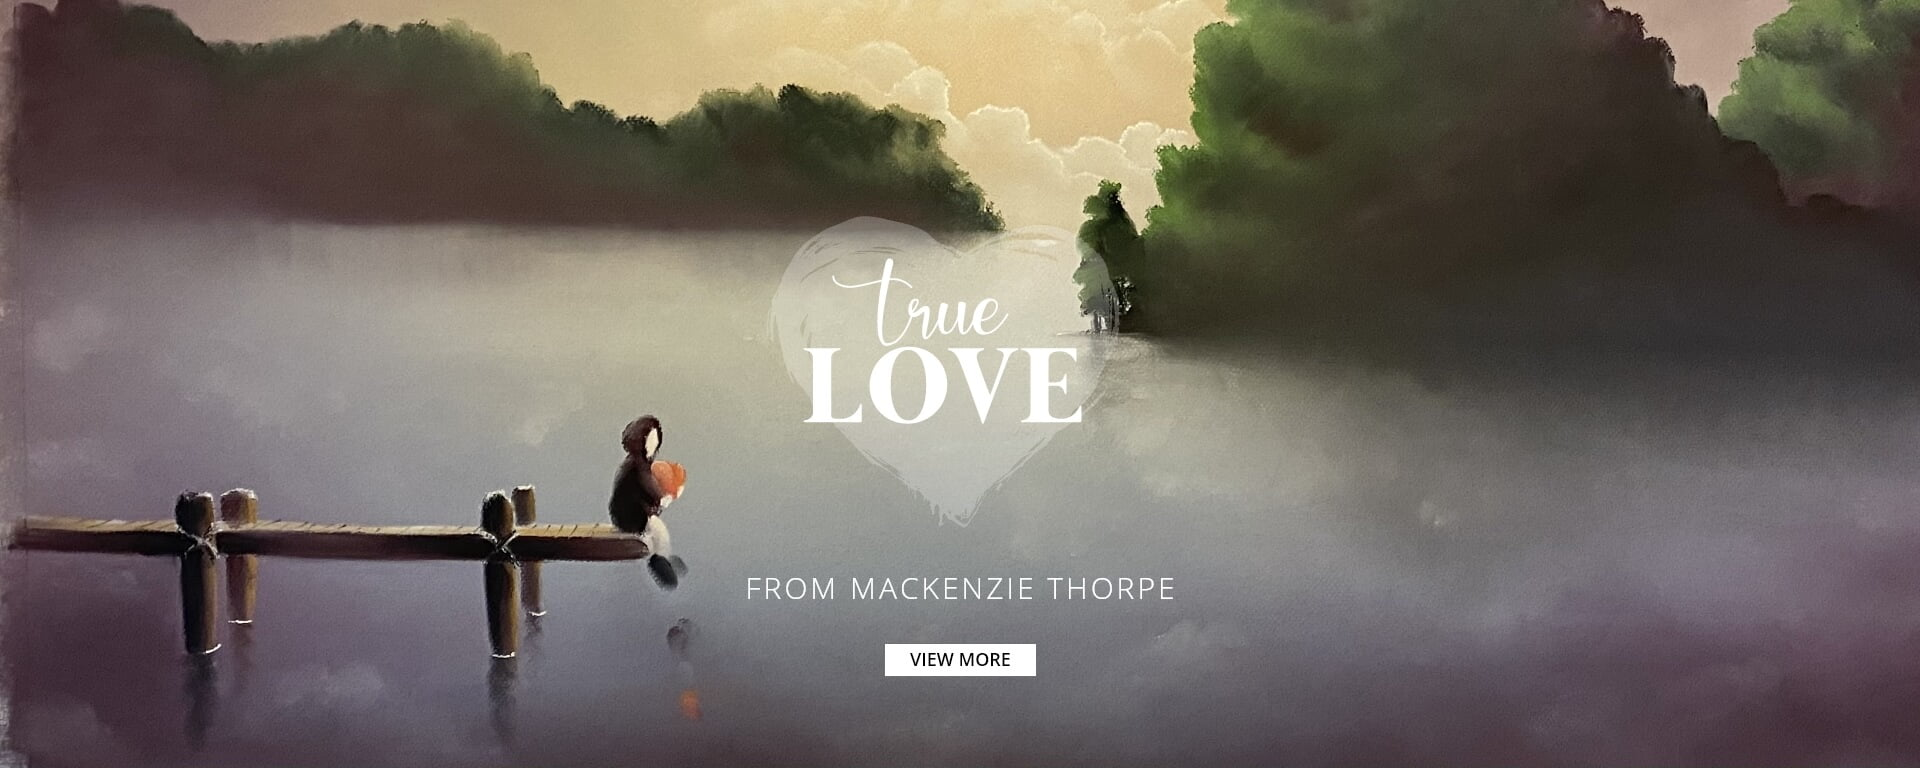 An Uplifting New Release from Mackenzie Thorpe – 'True Love'.